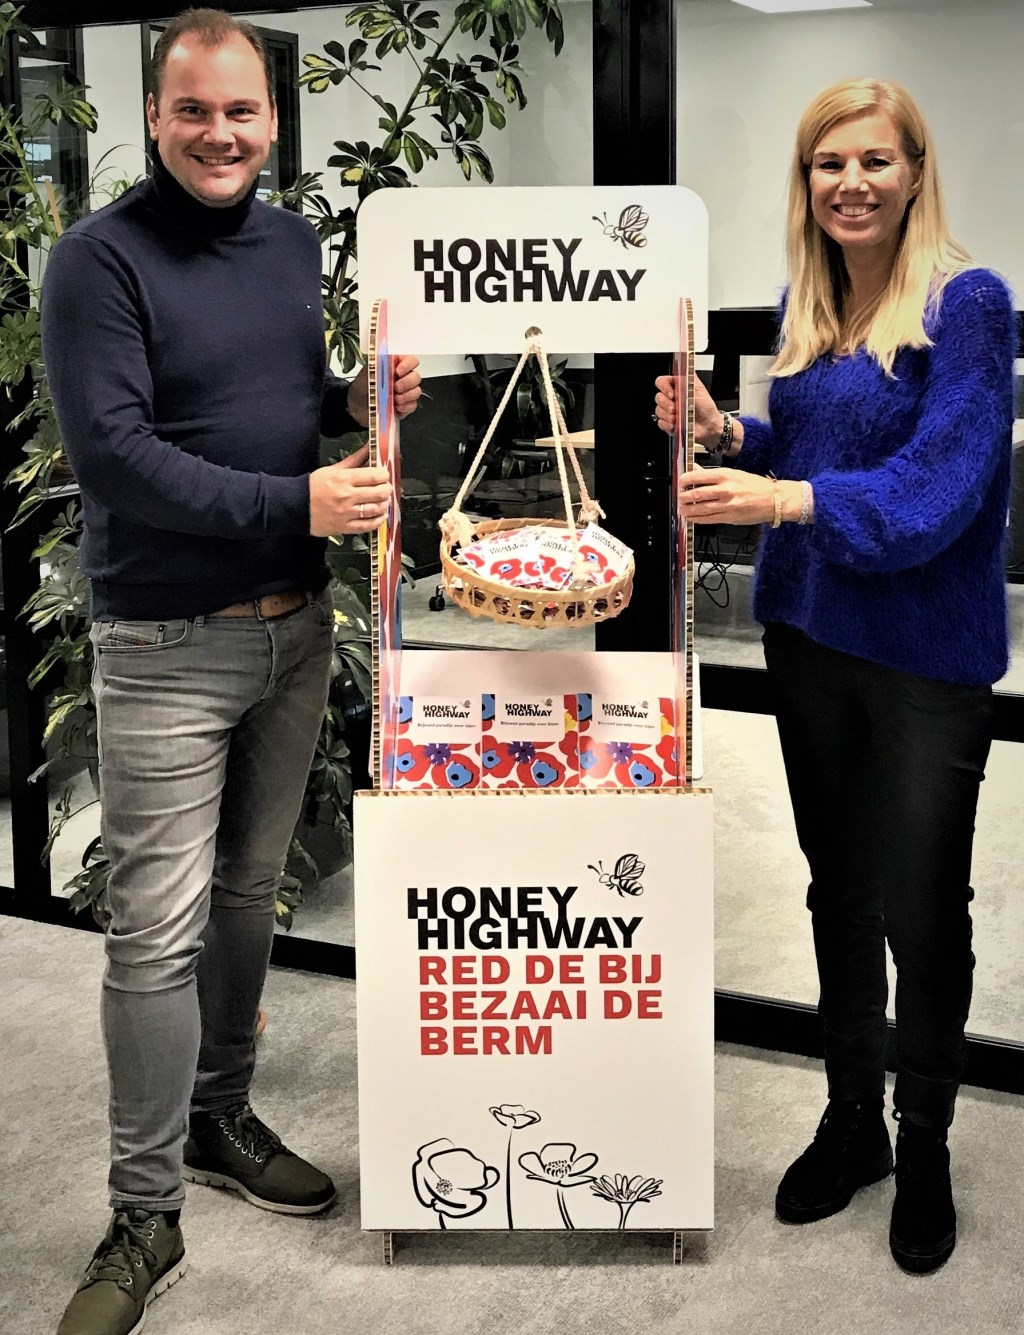 Foto: Honey Highway  © Verhagen